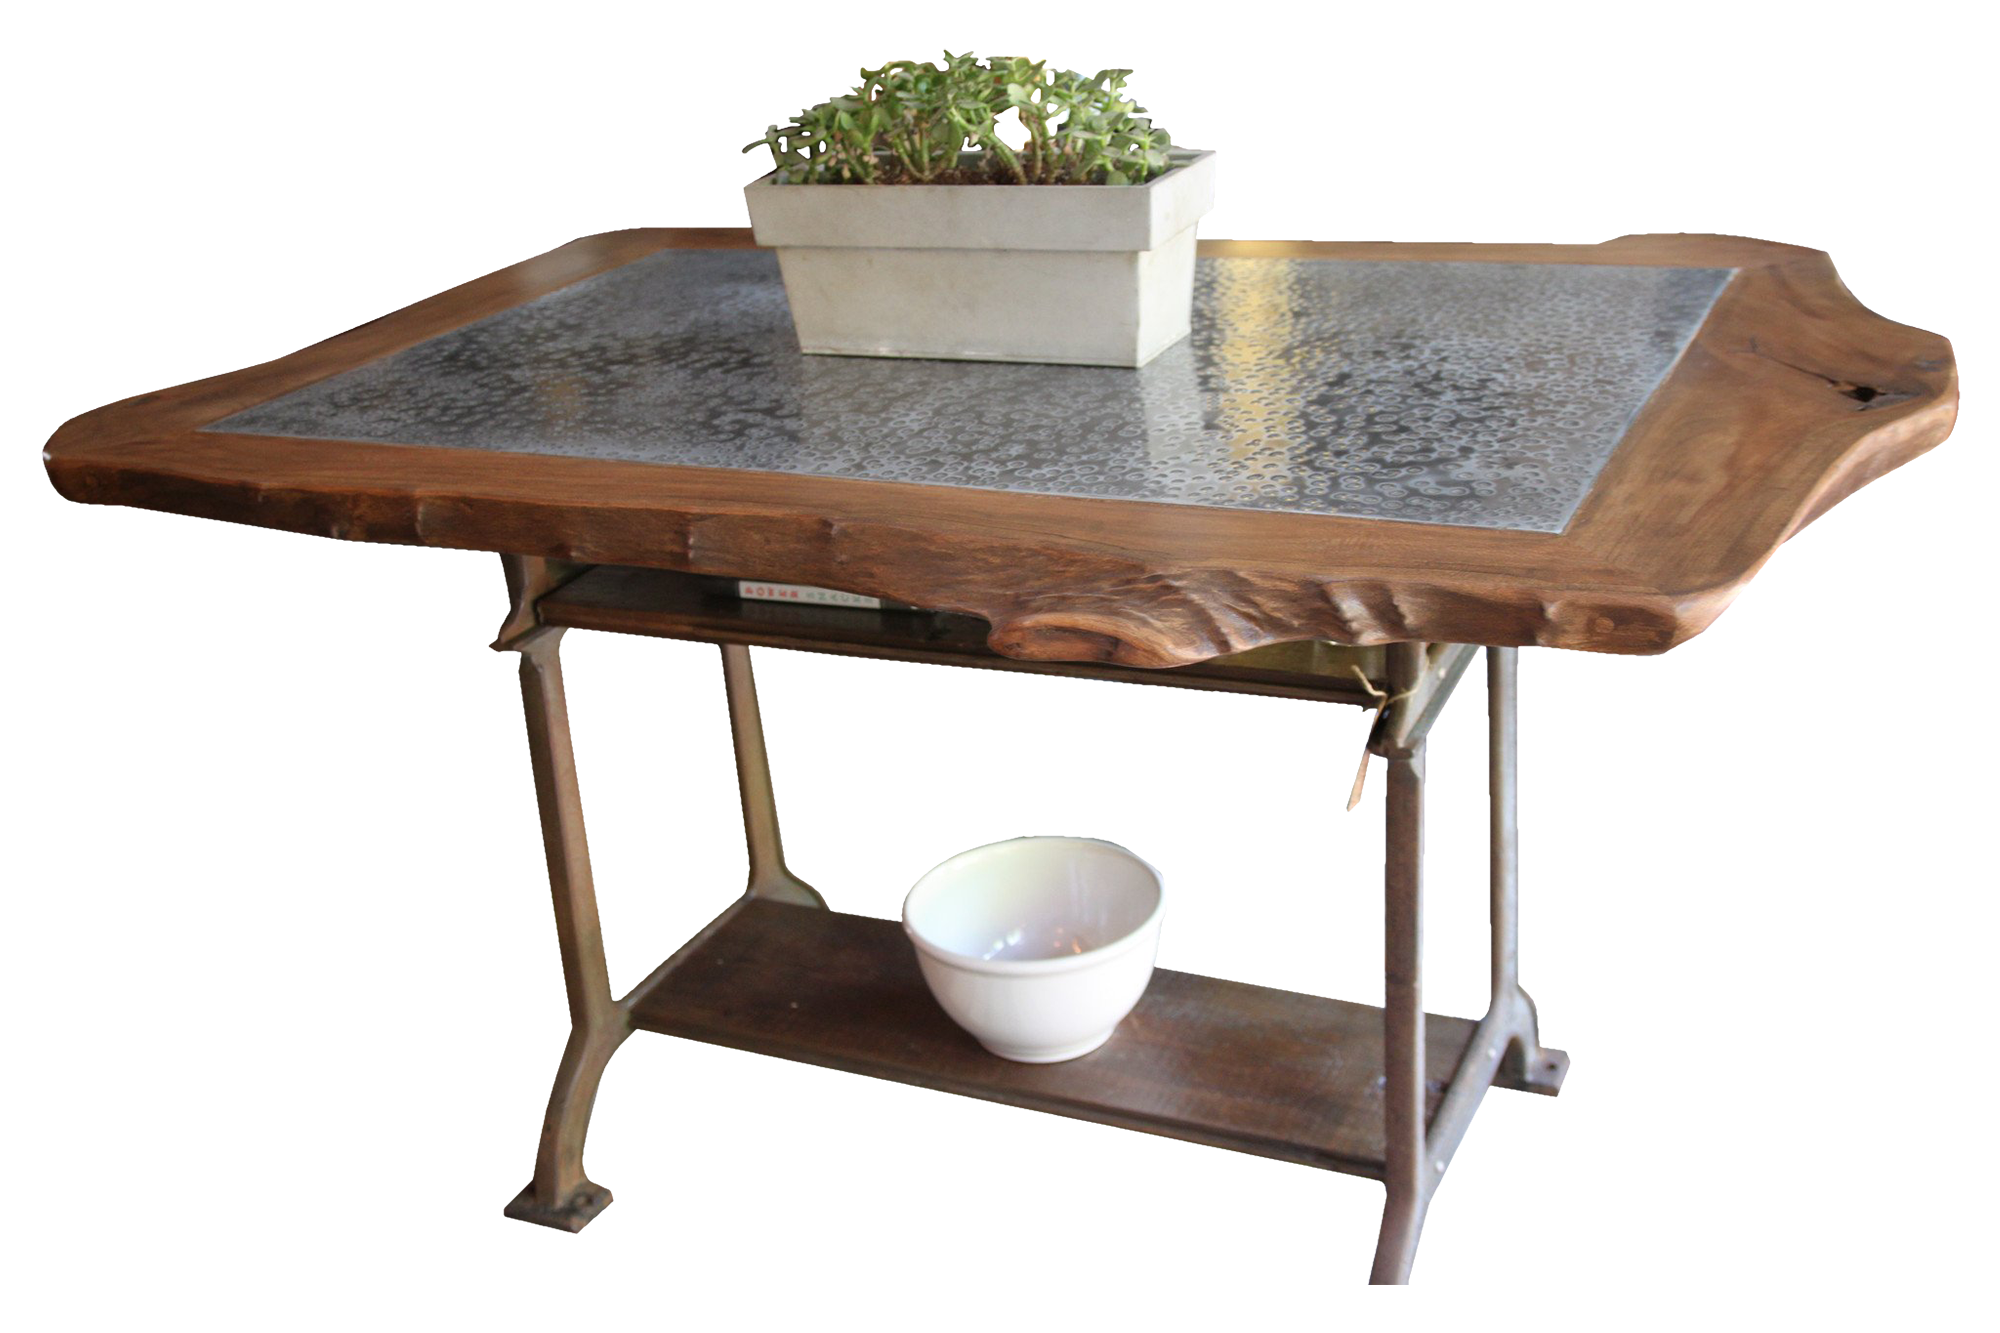 Live Edge Sycamore and Hammered Zinc Table with Industrial Machine